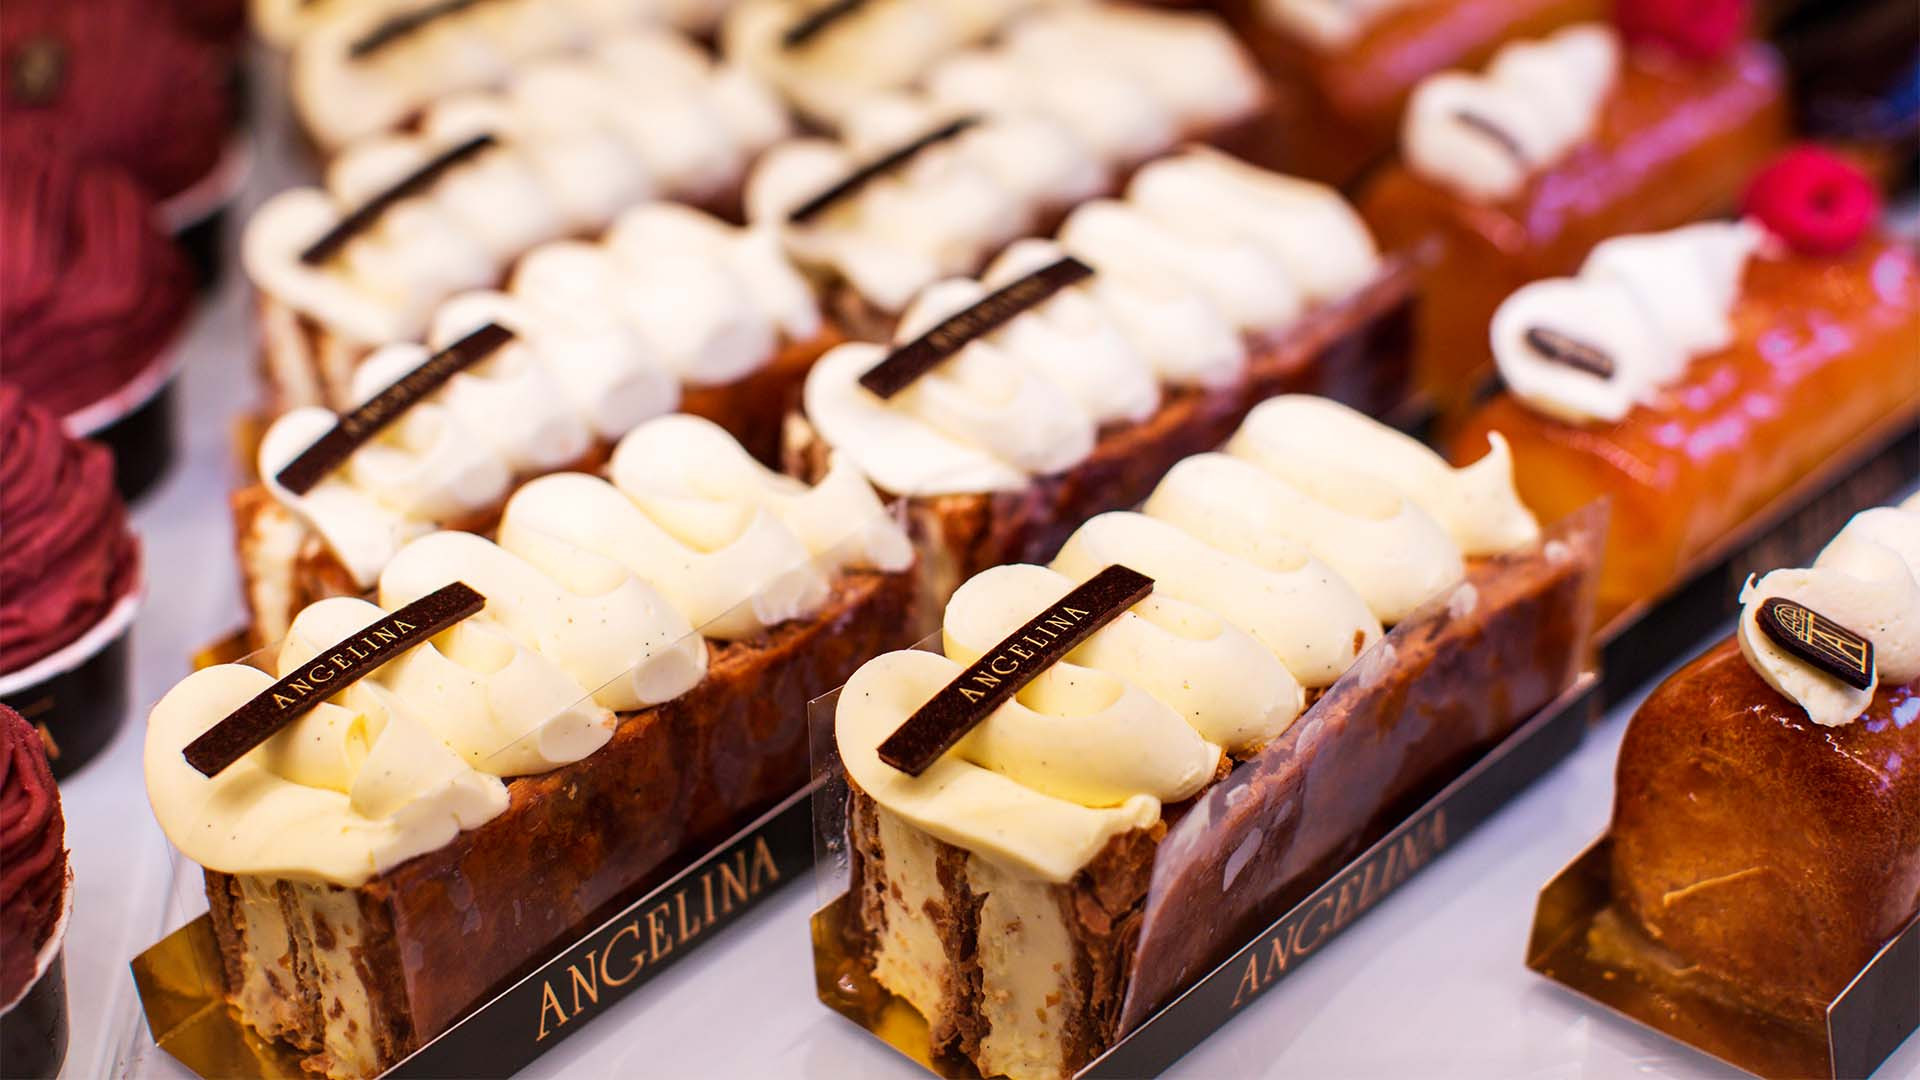 Angelina pastries in Paris, France